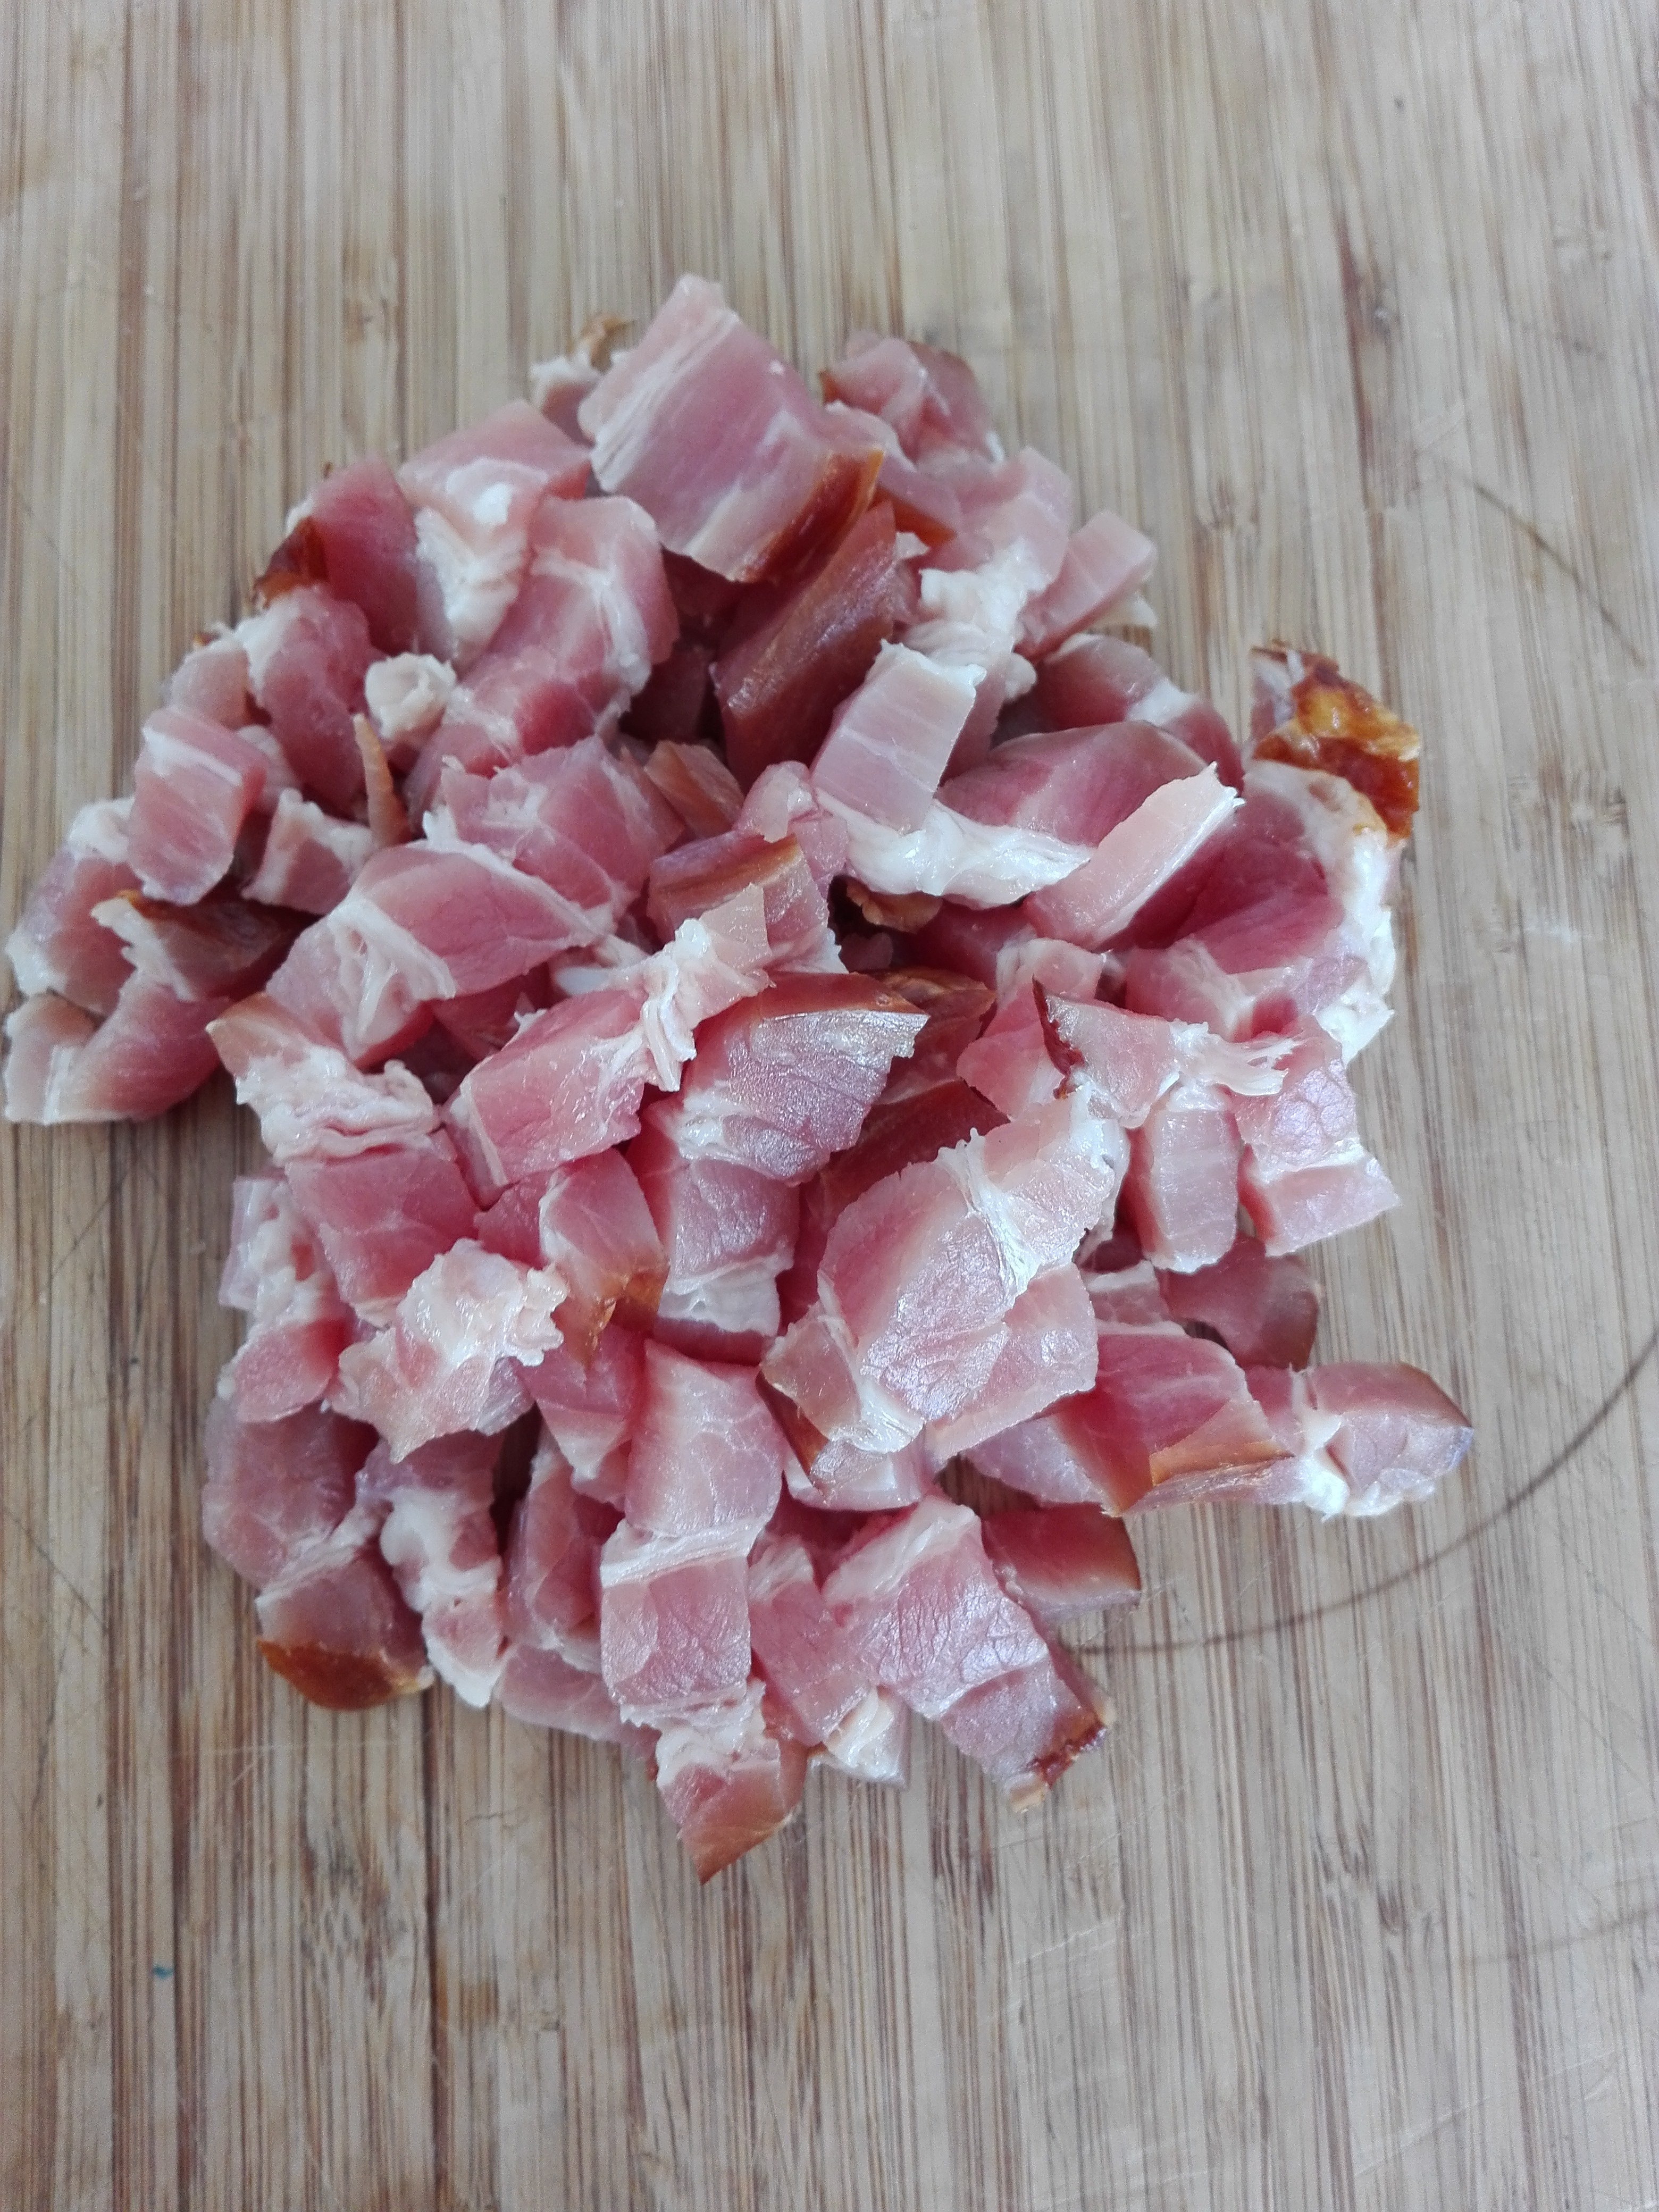 Picture of Bacon Bits